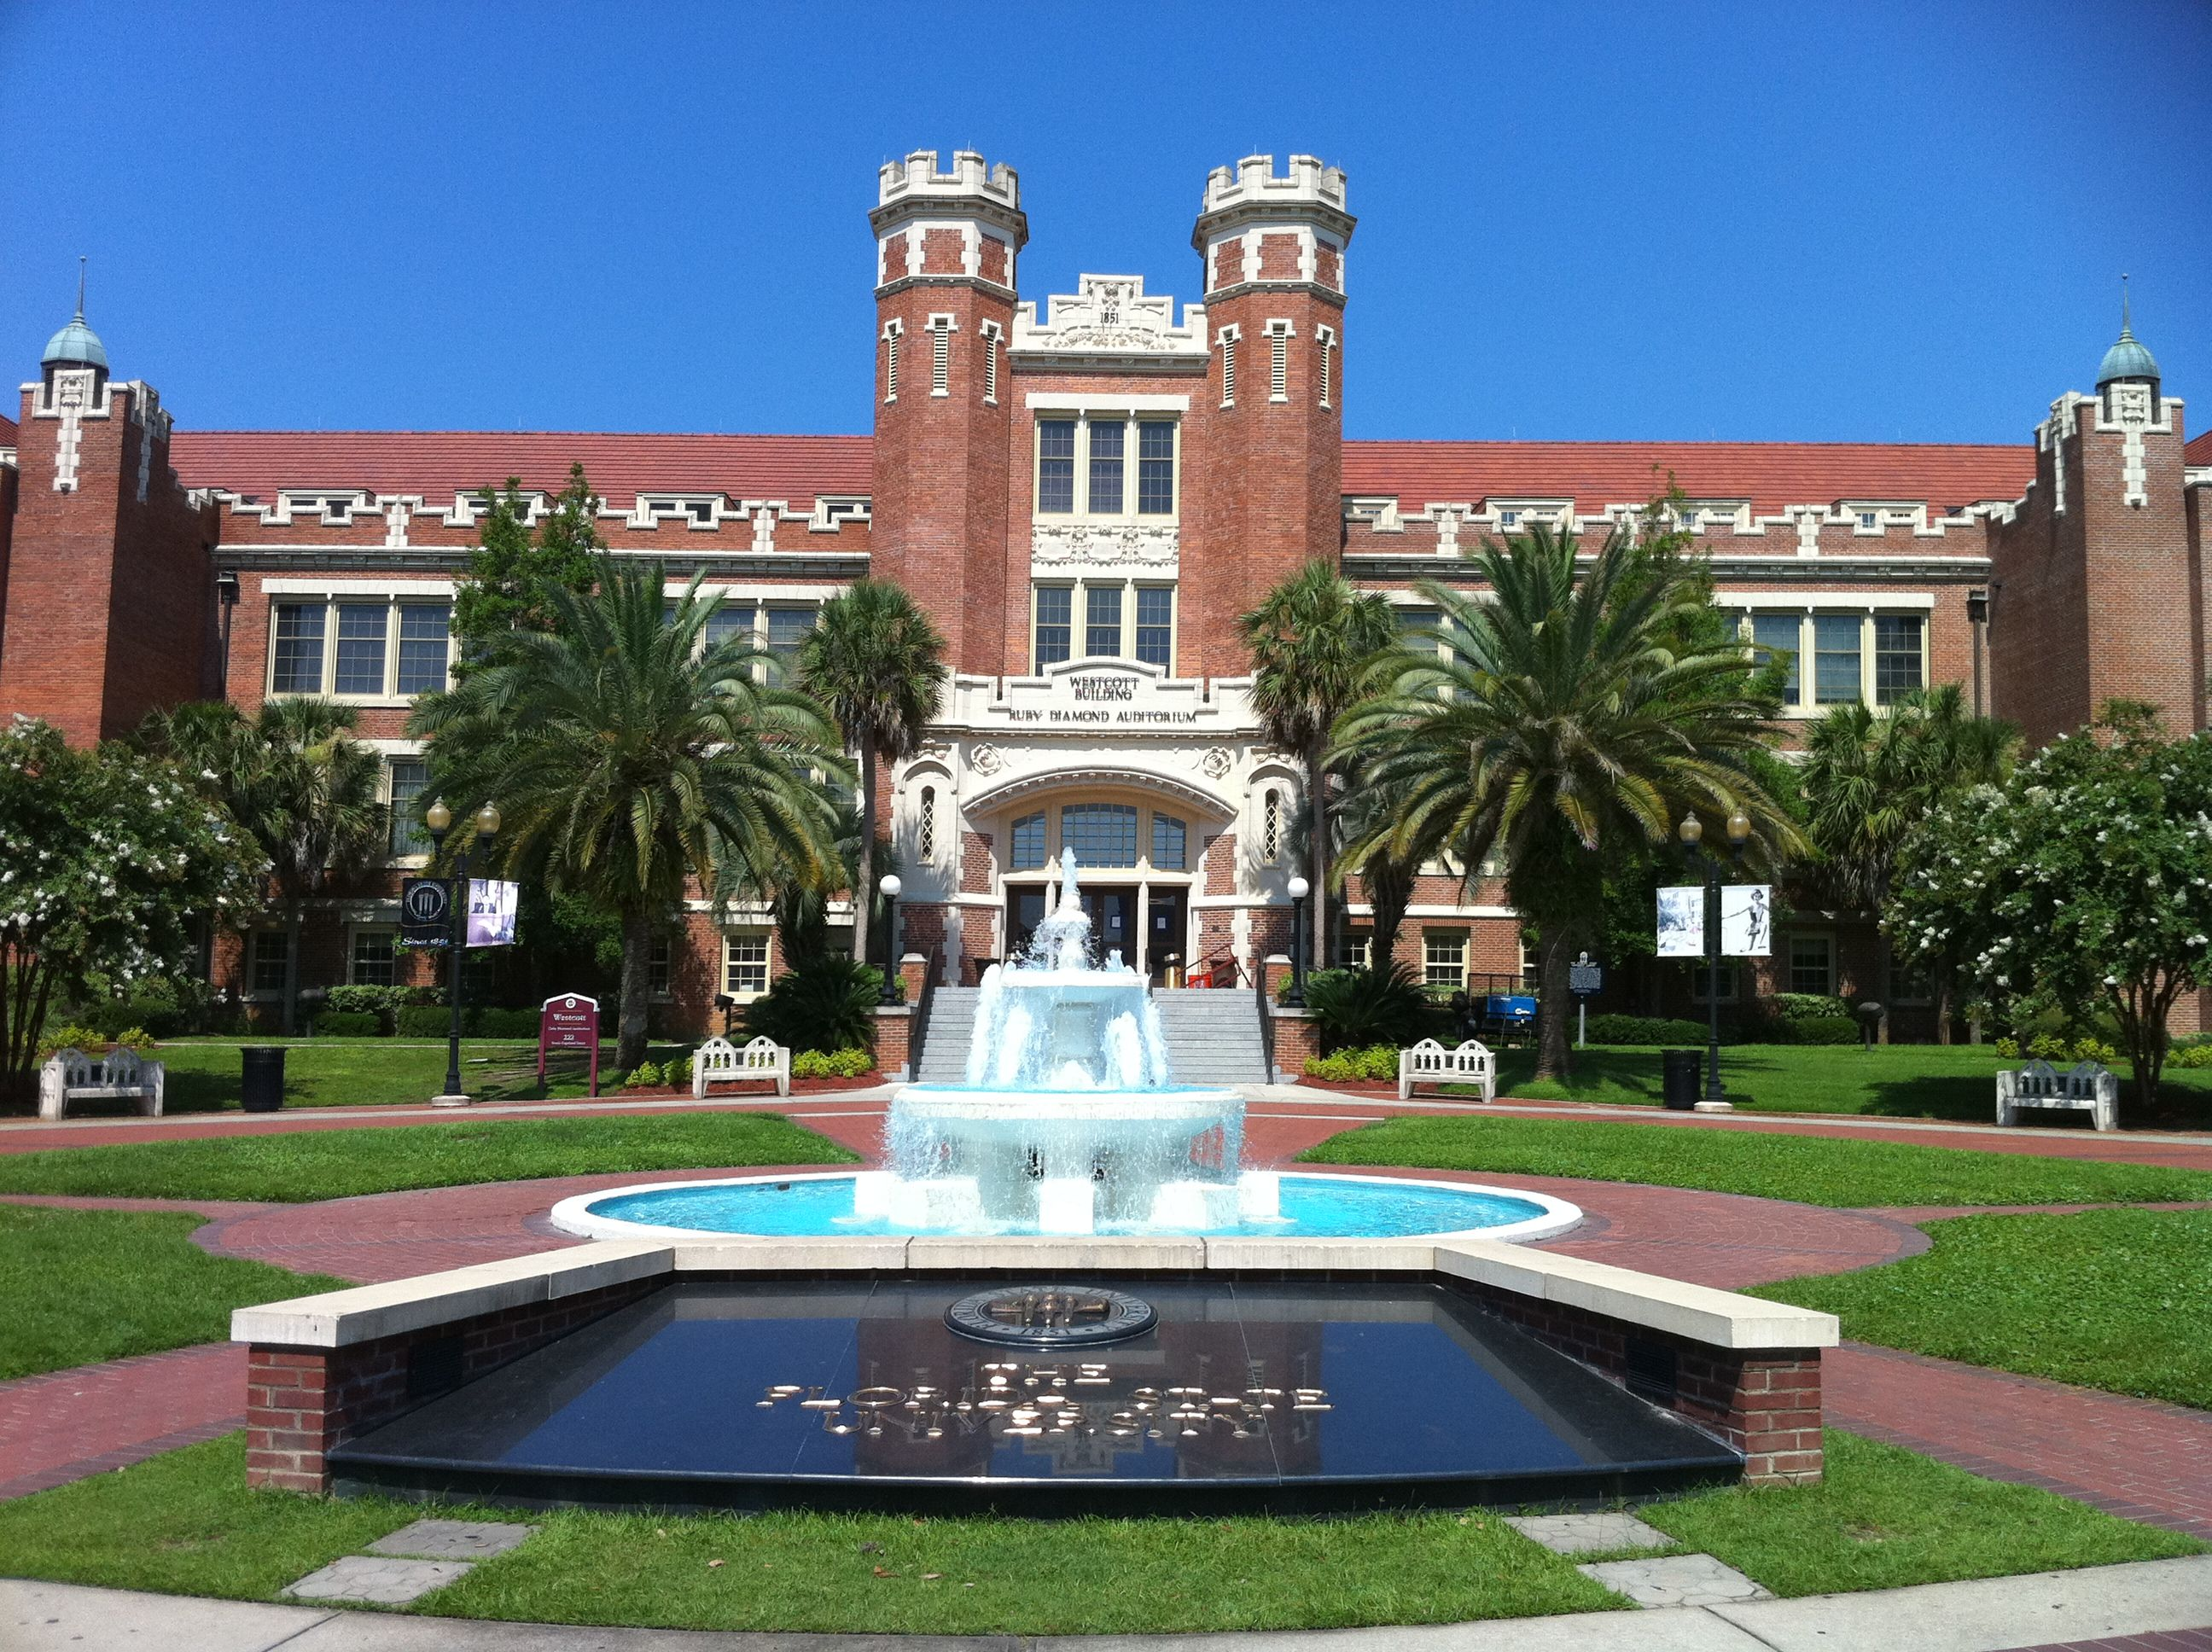 the benefits of taking college at the university of florida No at one time, ssa did pay benefits to college students, but the law changed in 1981 we now pay benefits only to students taking courses at grade 12 or below.